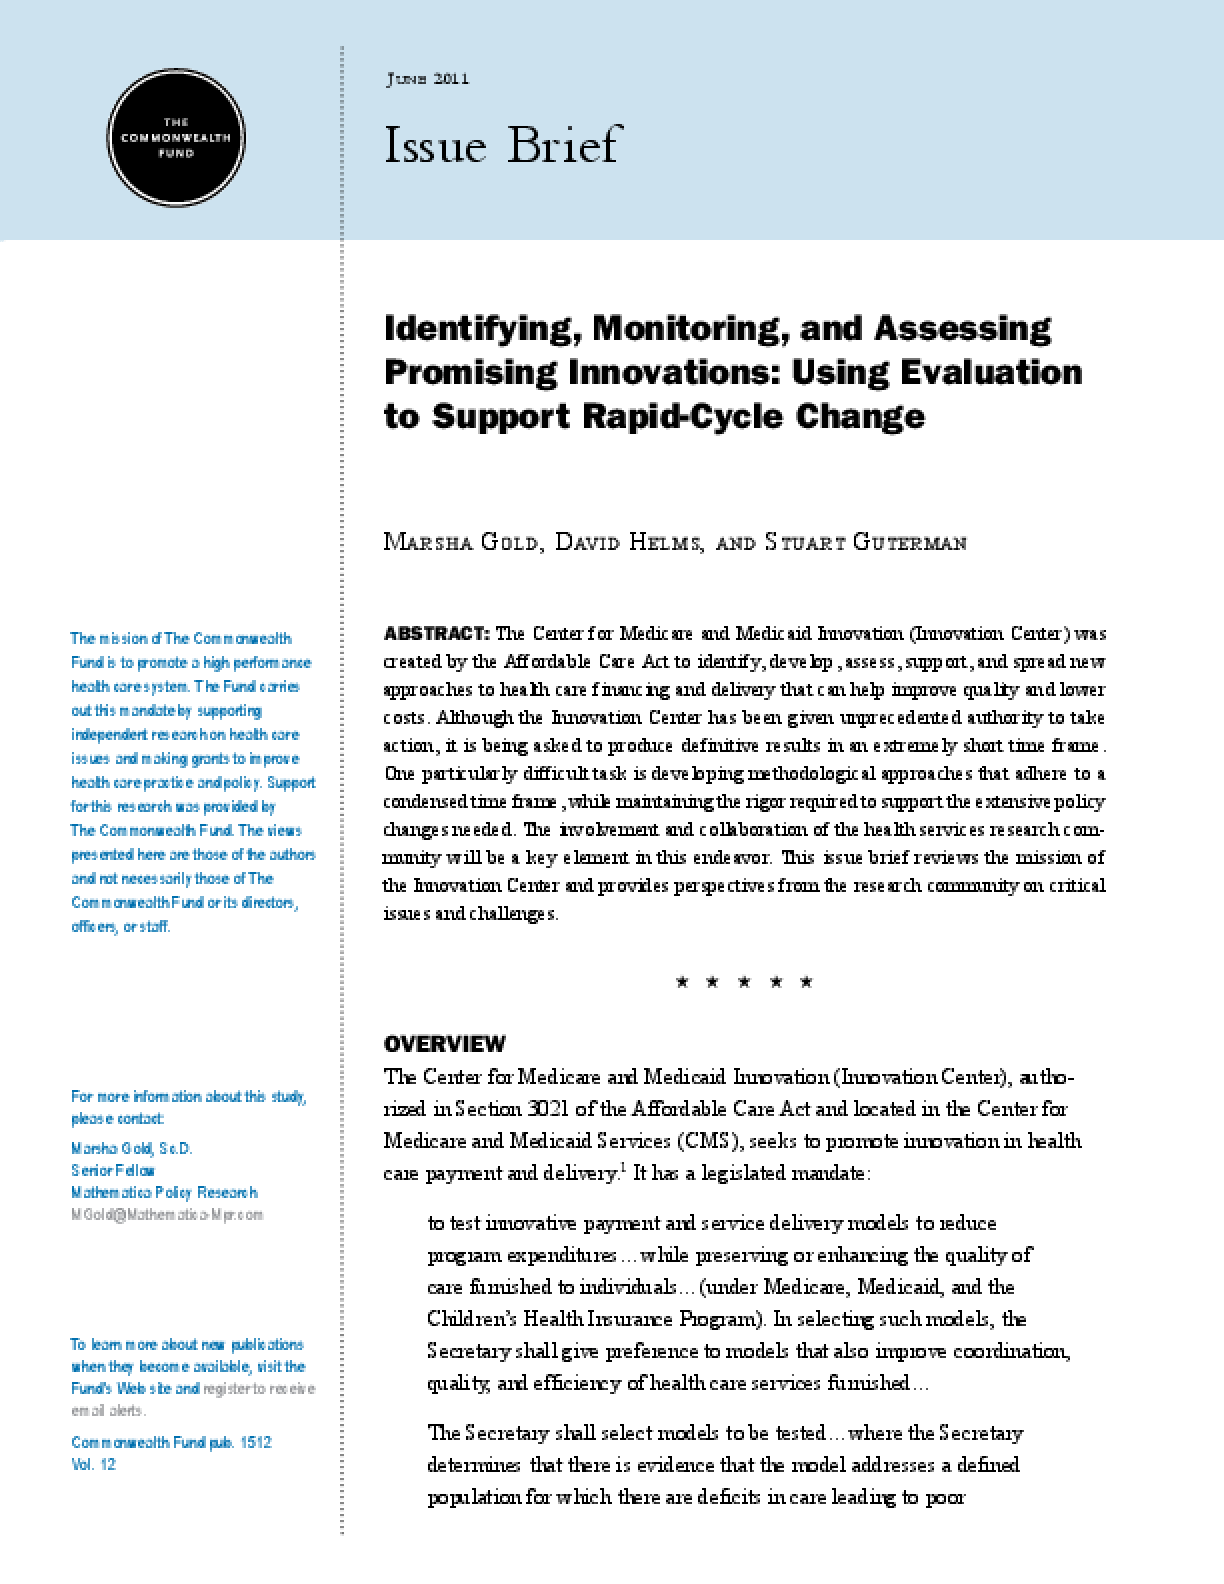 Identifying, Monitoring, and Assessing Promising Innovations: Using Evaluation to Support Rapid-Cycle Change